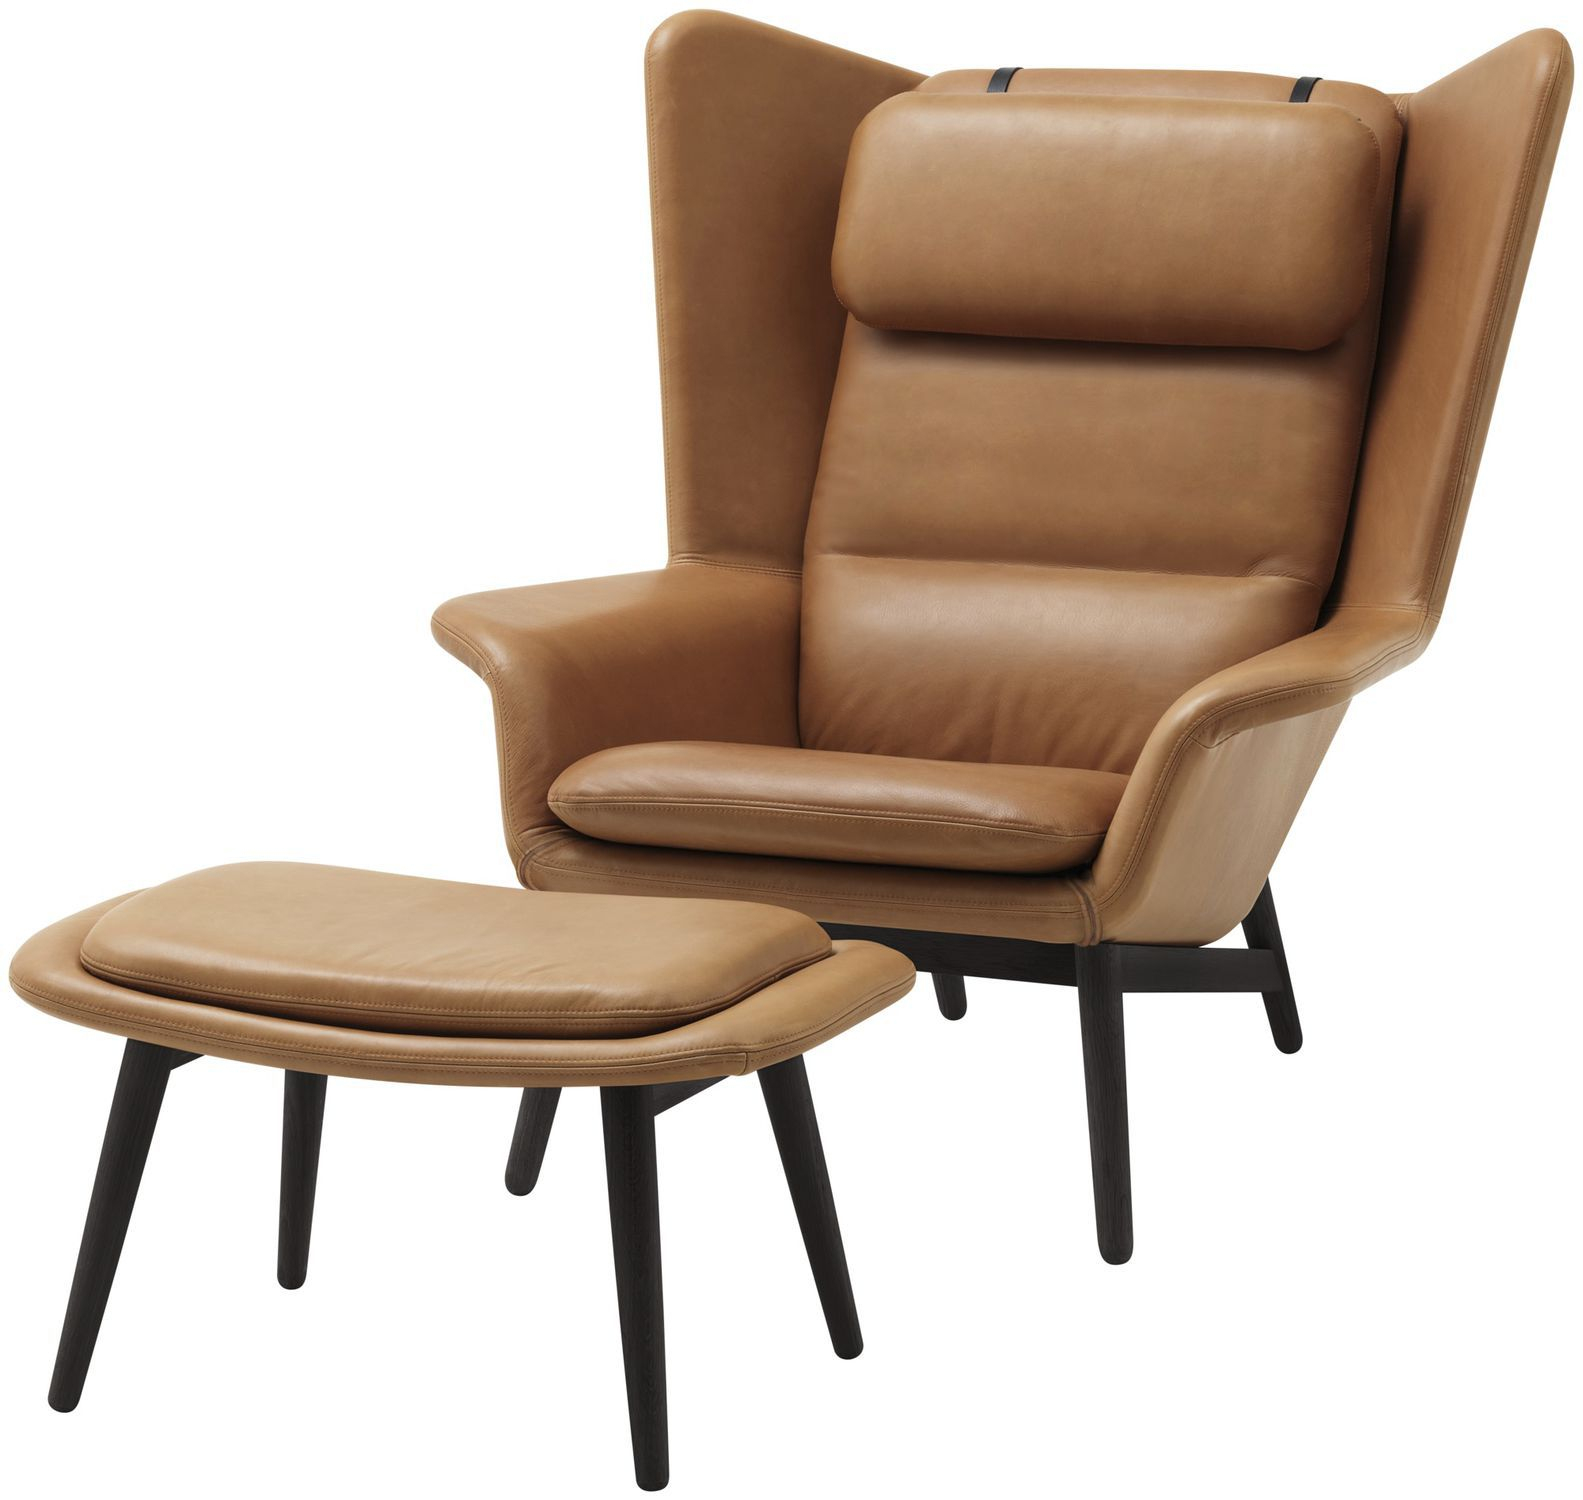 Contemporary Armchair / Wooden / Fabric / Leather tout Bo Concept Fauteuil